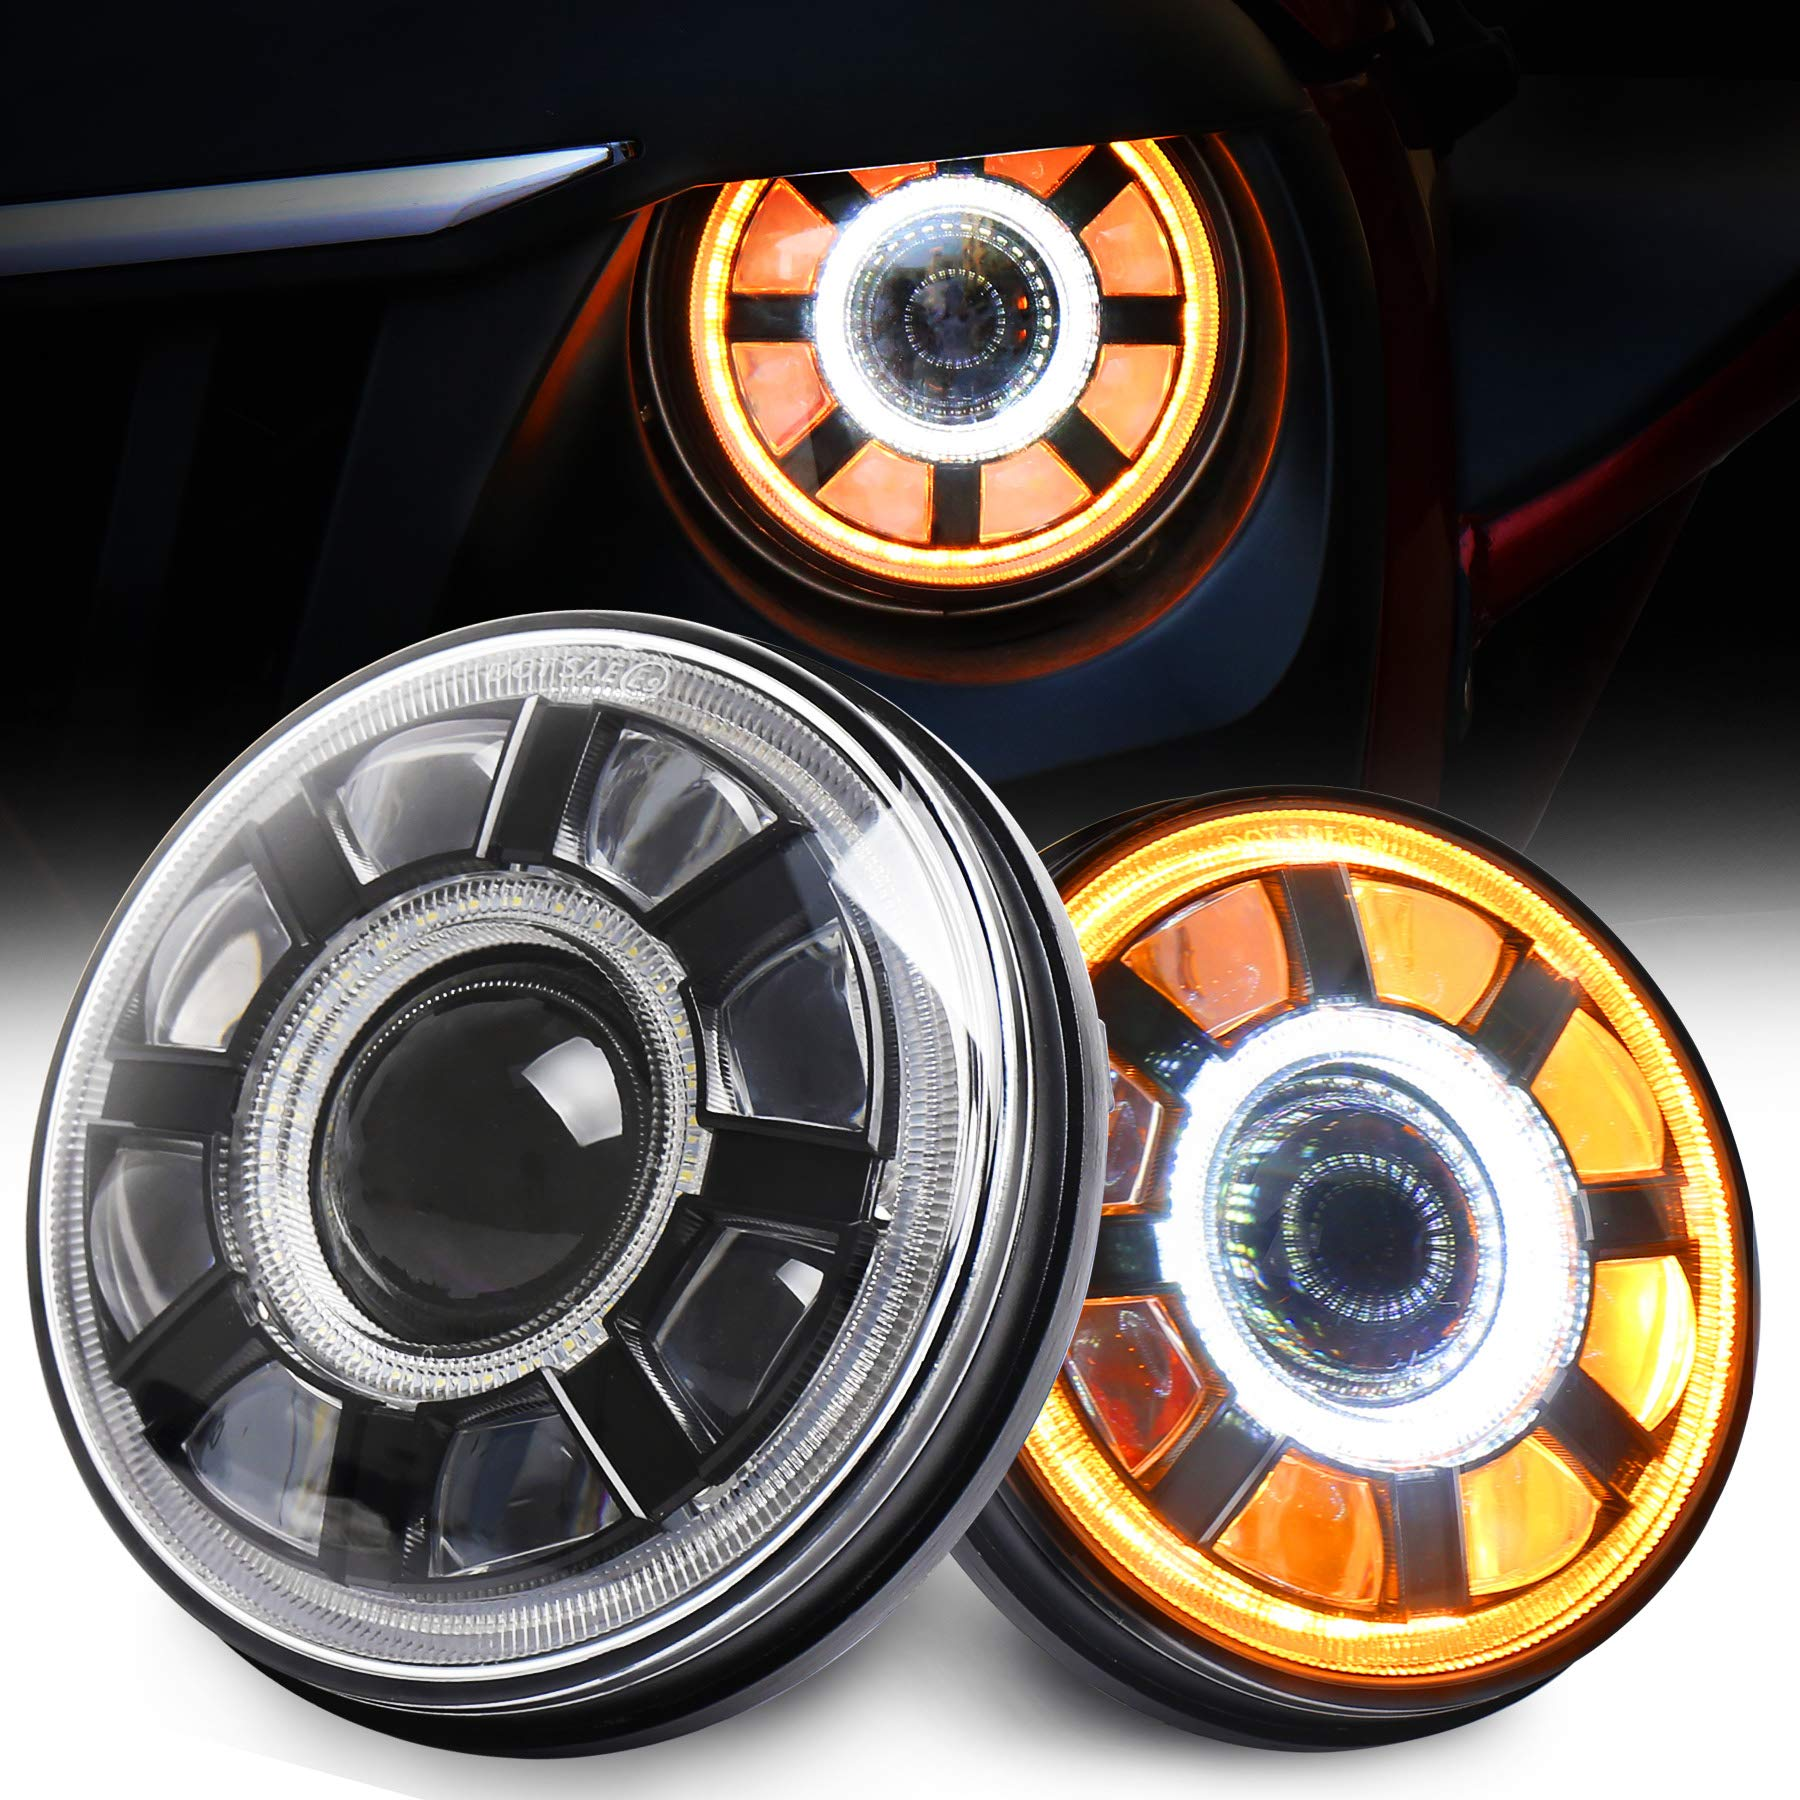 Jeep Wrangler LED Headlights with White DRL and Amber Halo Turn Signal for Jeep Wrangler JK TJ CJ and Hummer H1//H2 7 Inch Round Jeep LED Headlights 2 PCS XMall Jeep Wrangler Headlights.